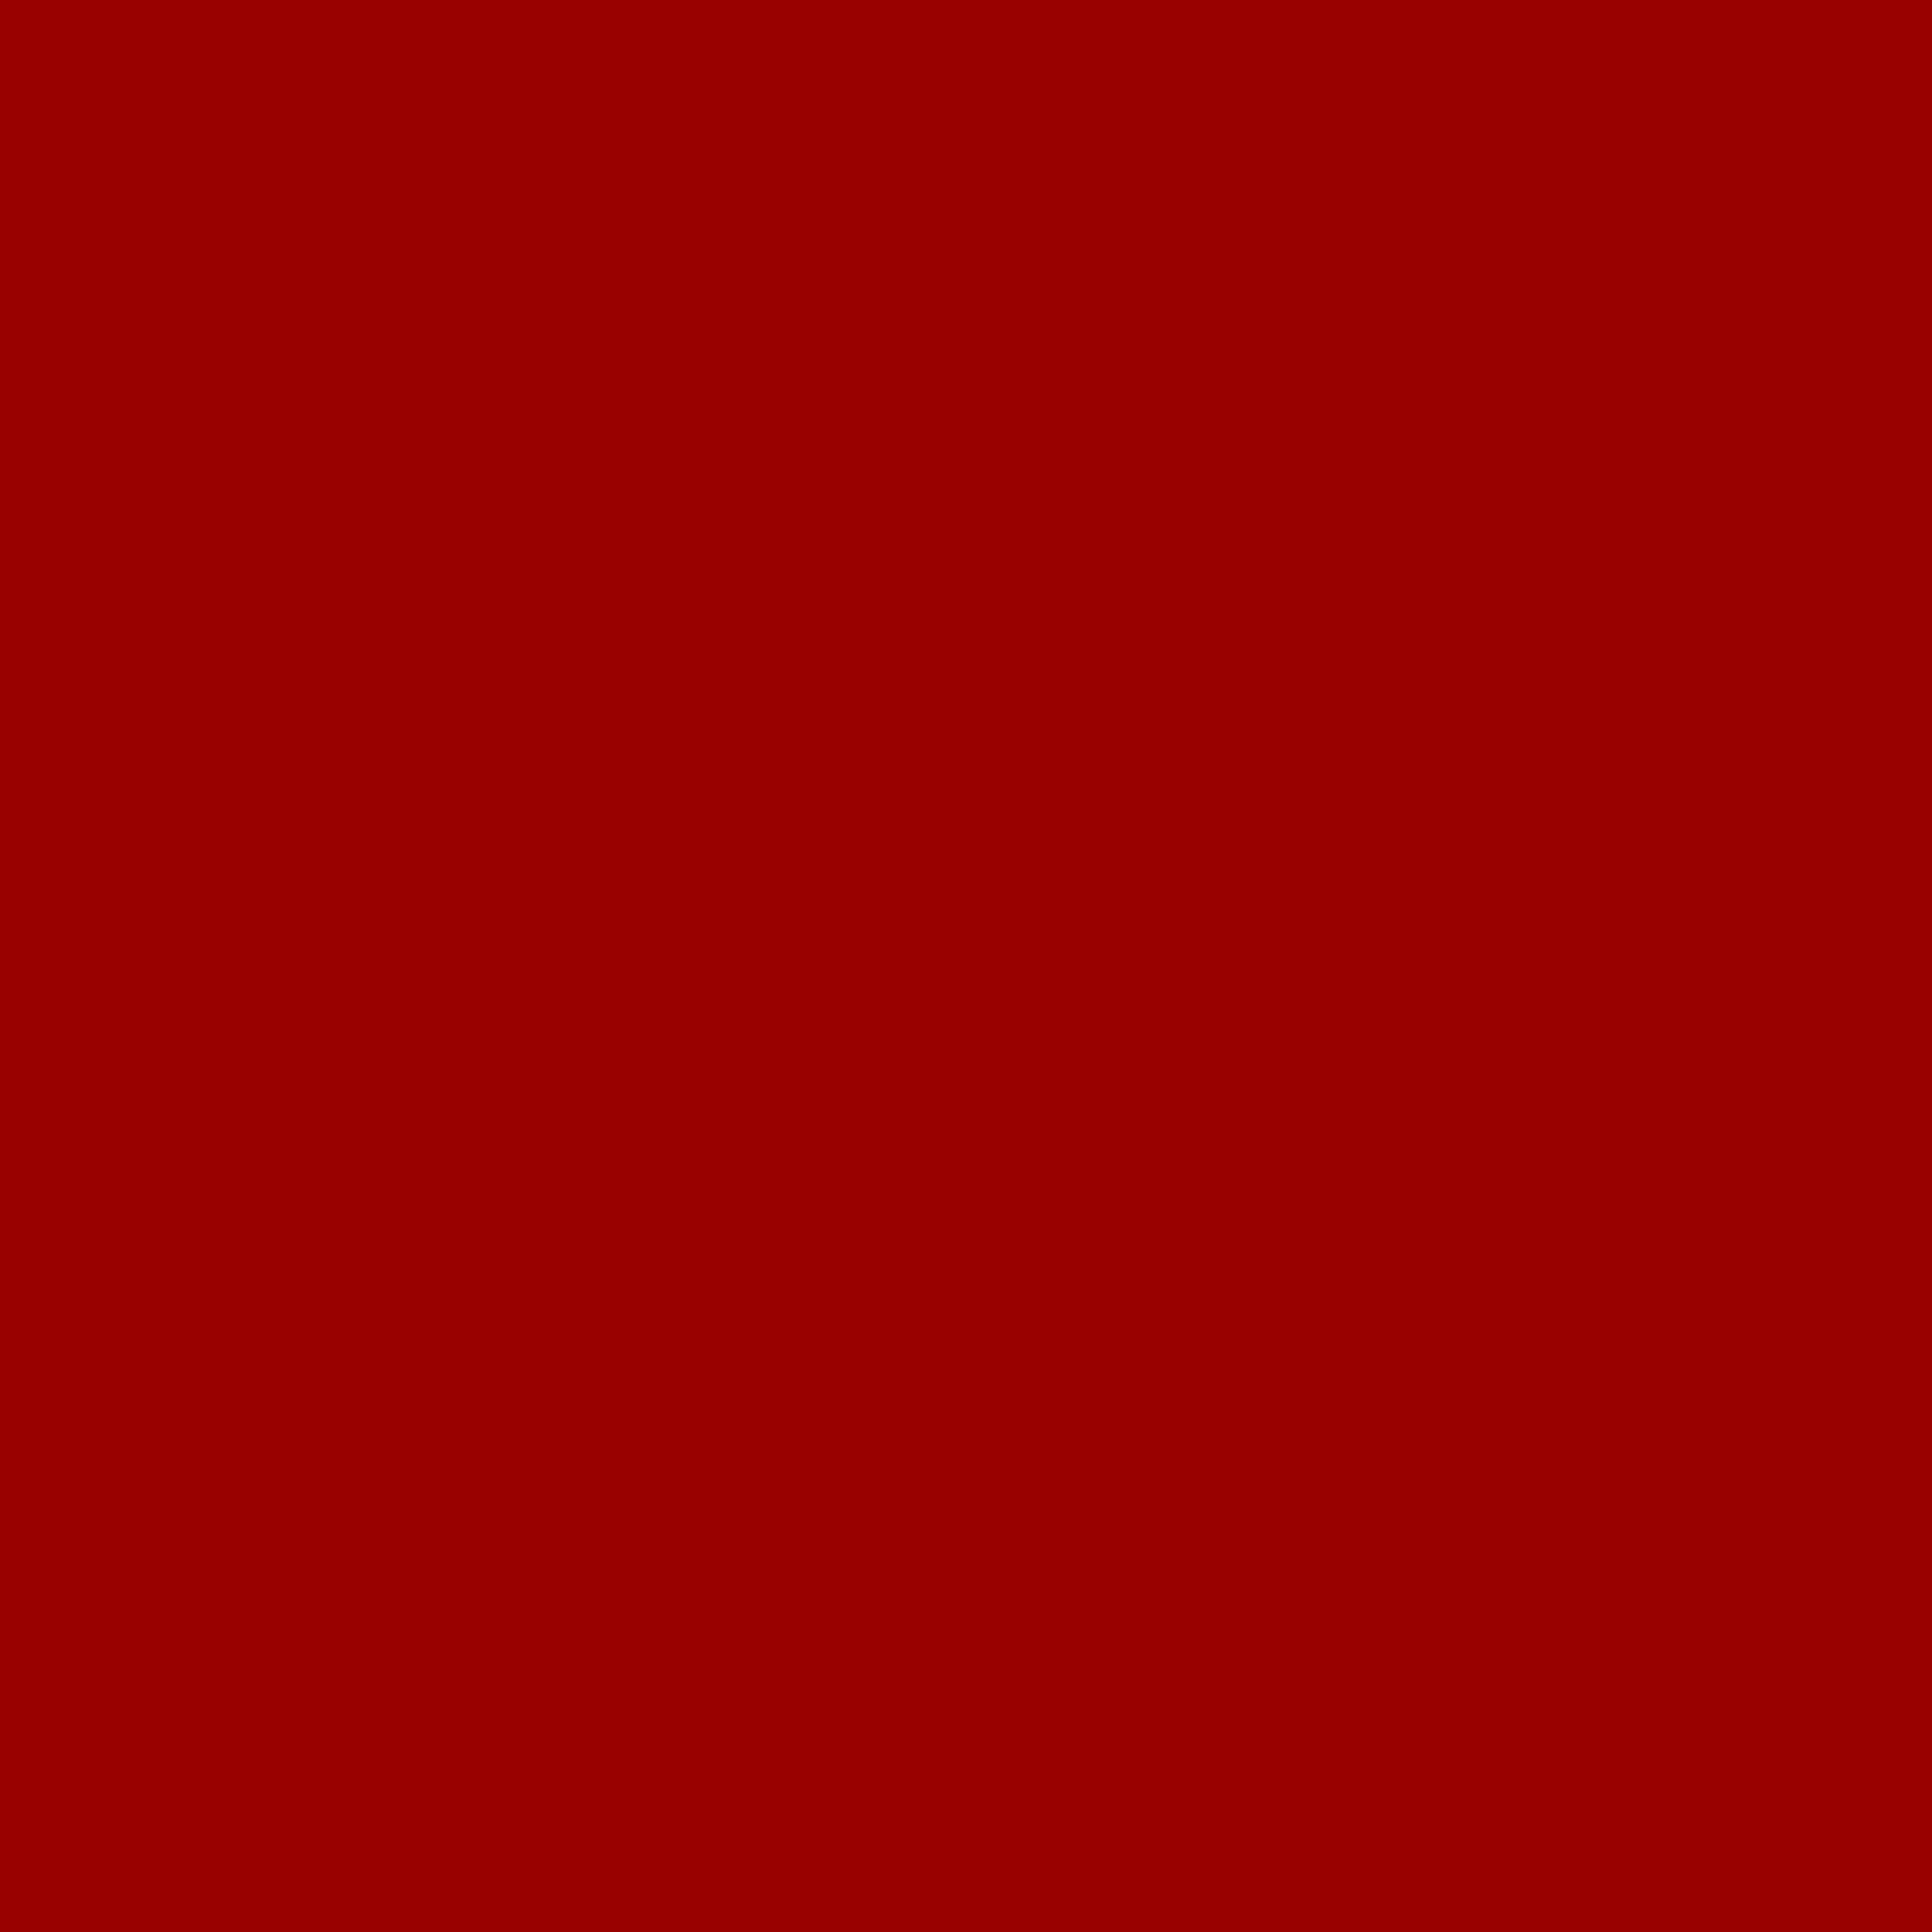 3600x3600 OU Crimson Red Solid Color Background